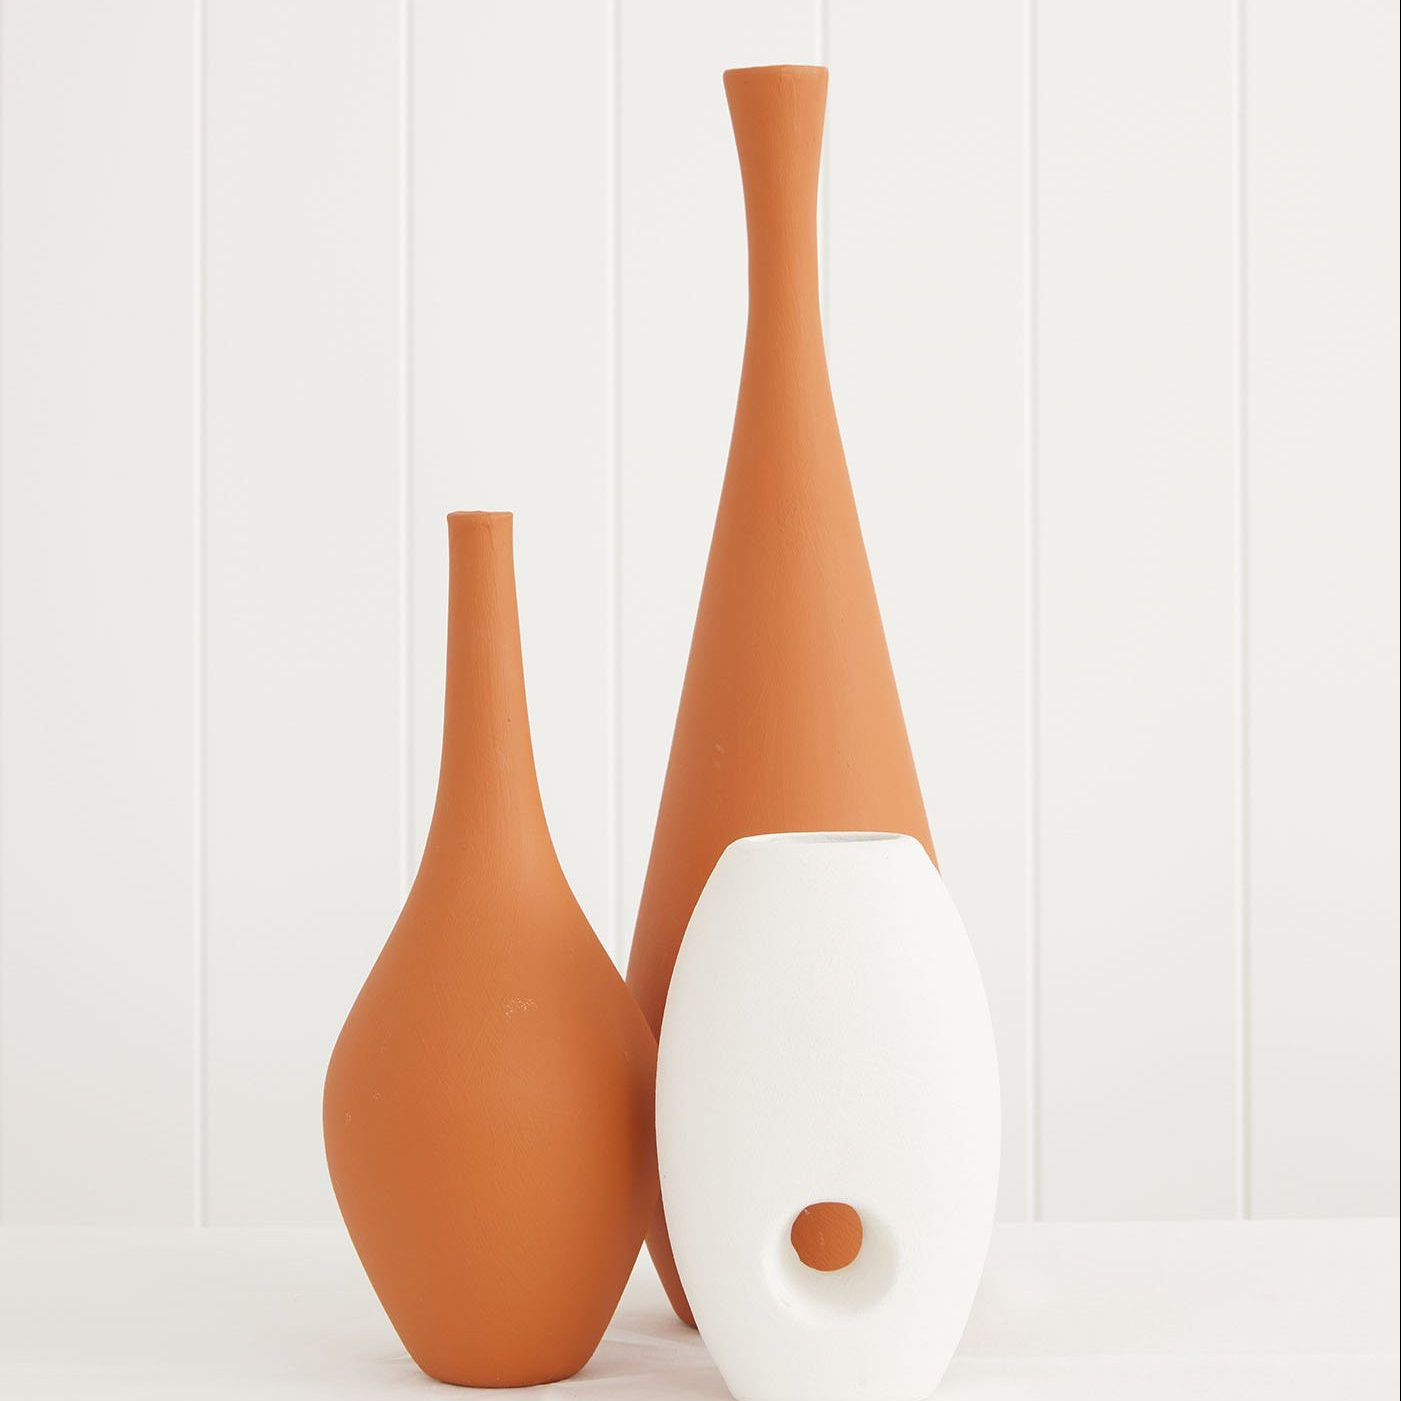 Found Collective pots